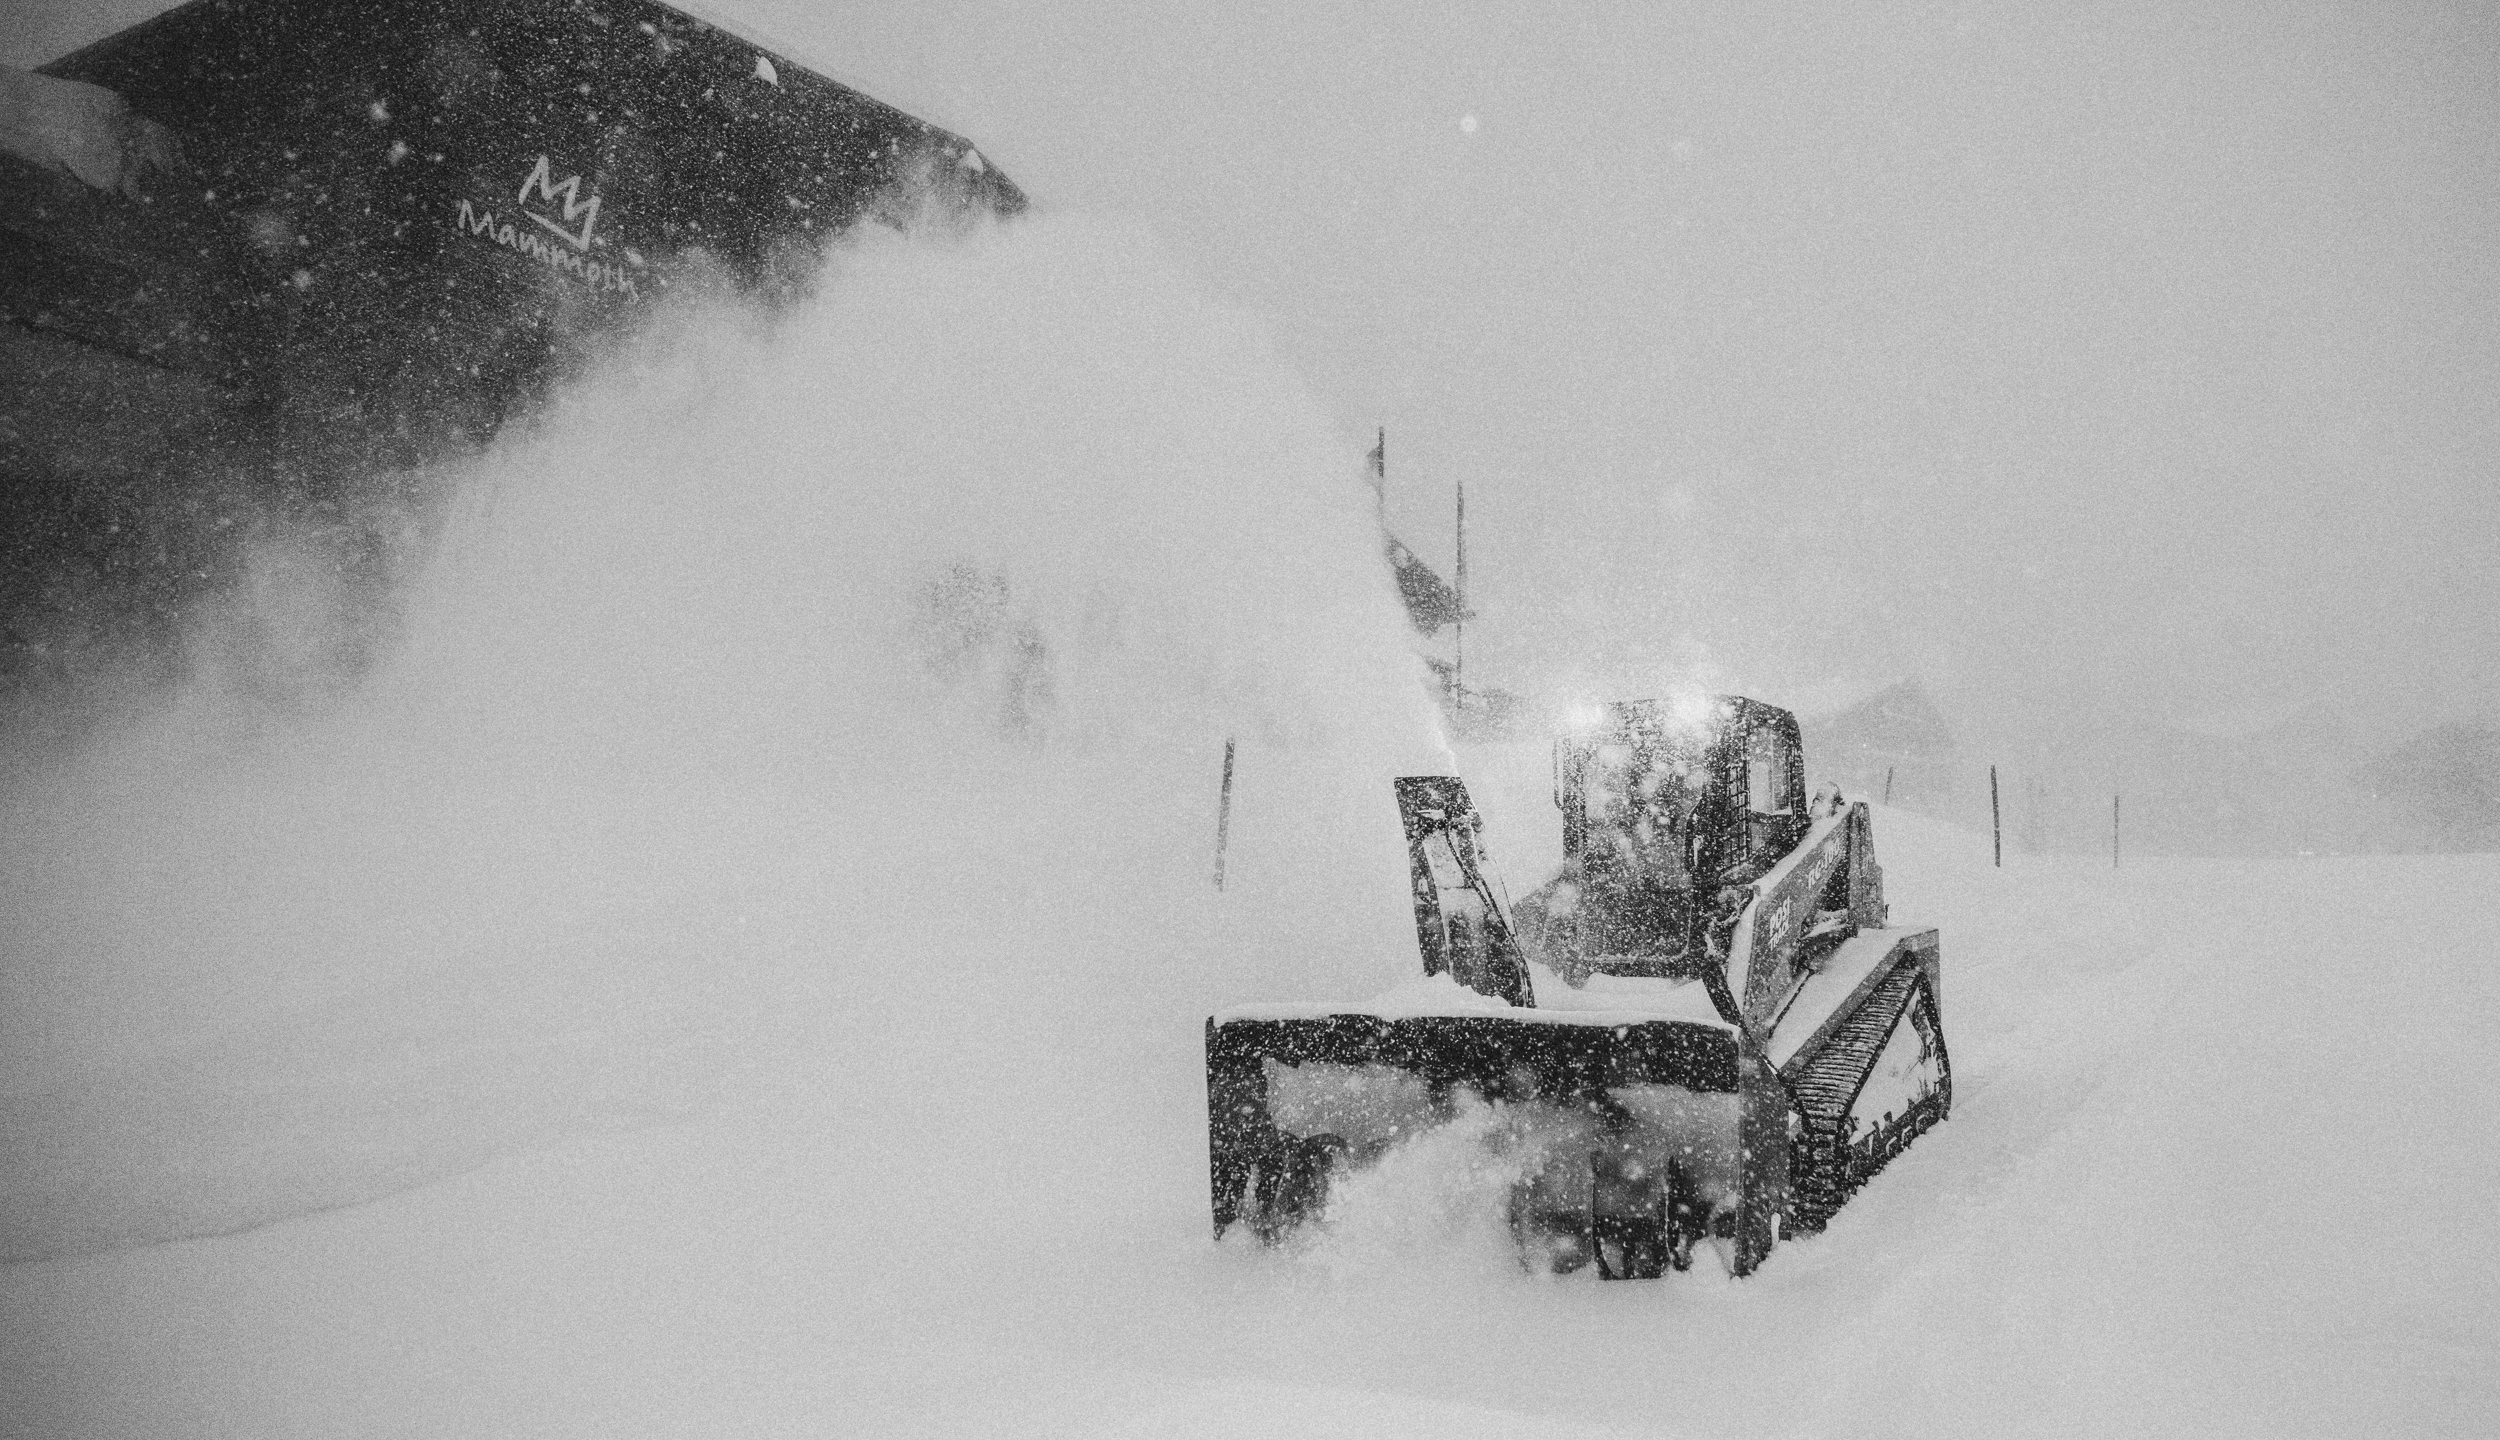 A storm dropped several feet of snow on Mammoth Mountain on Jan. 27, 2021. (Peter Morning / MMSA)